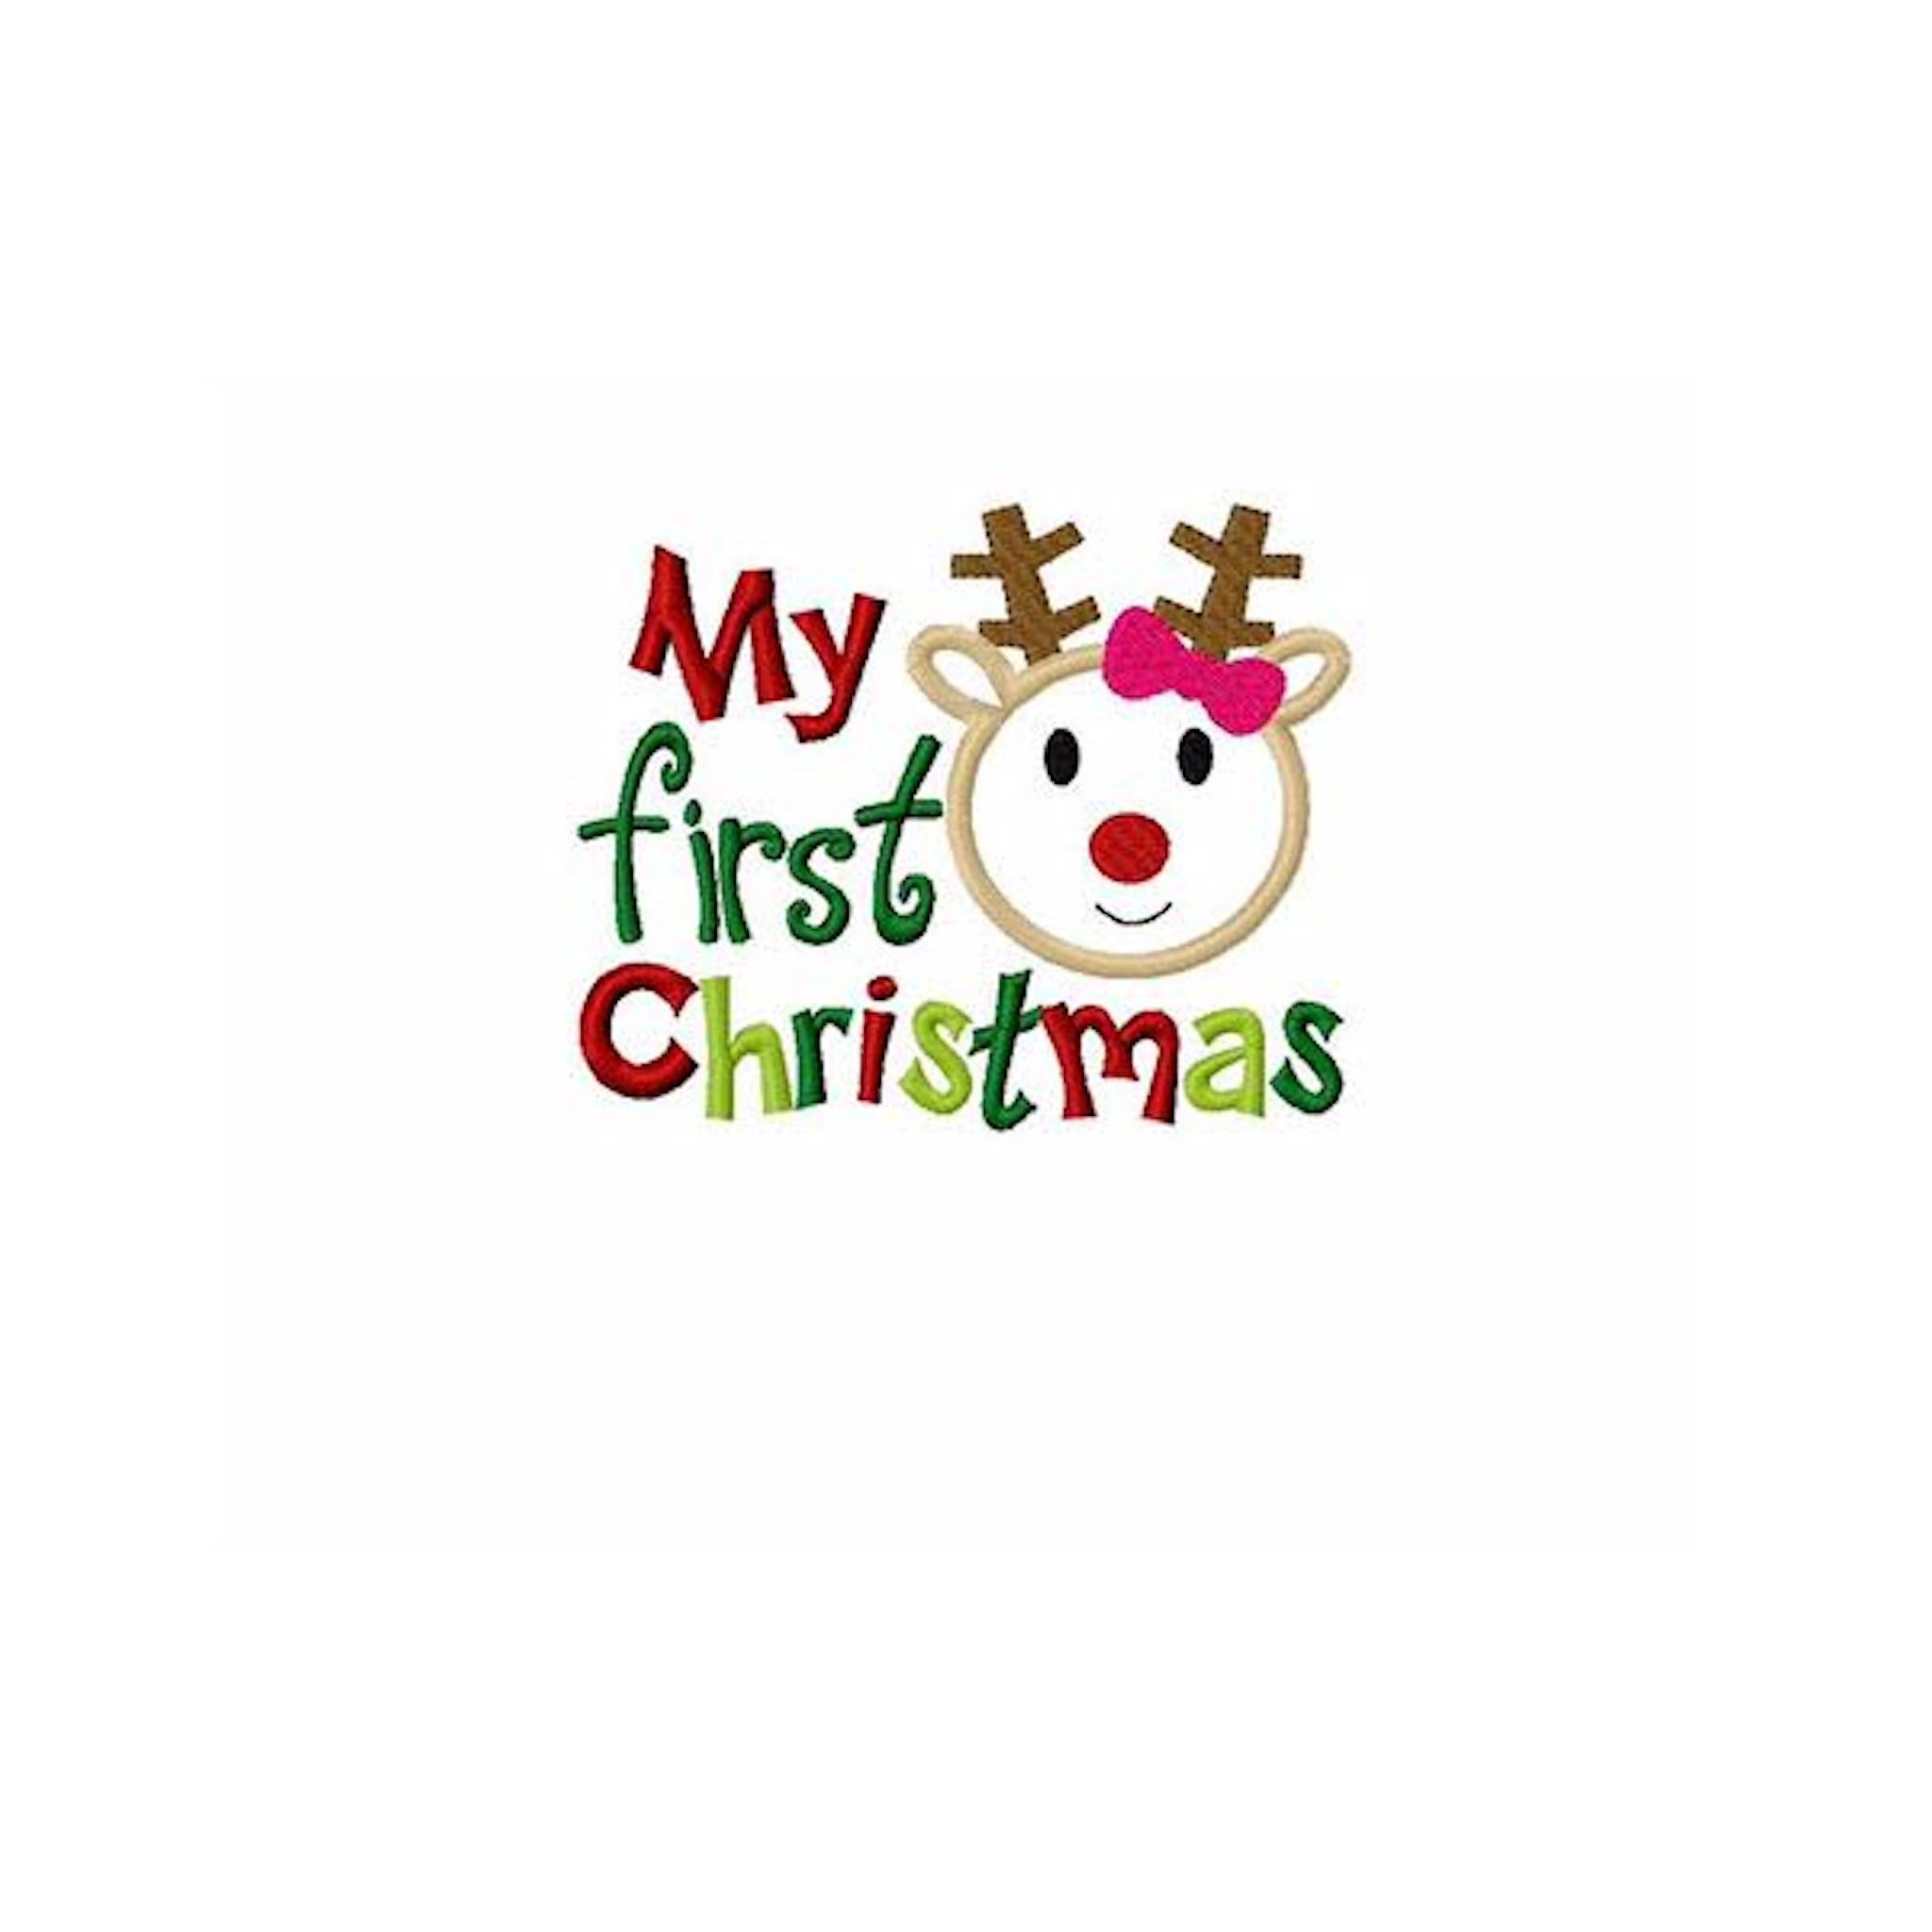 My first christmas clipart